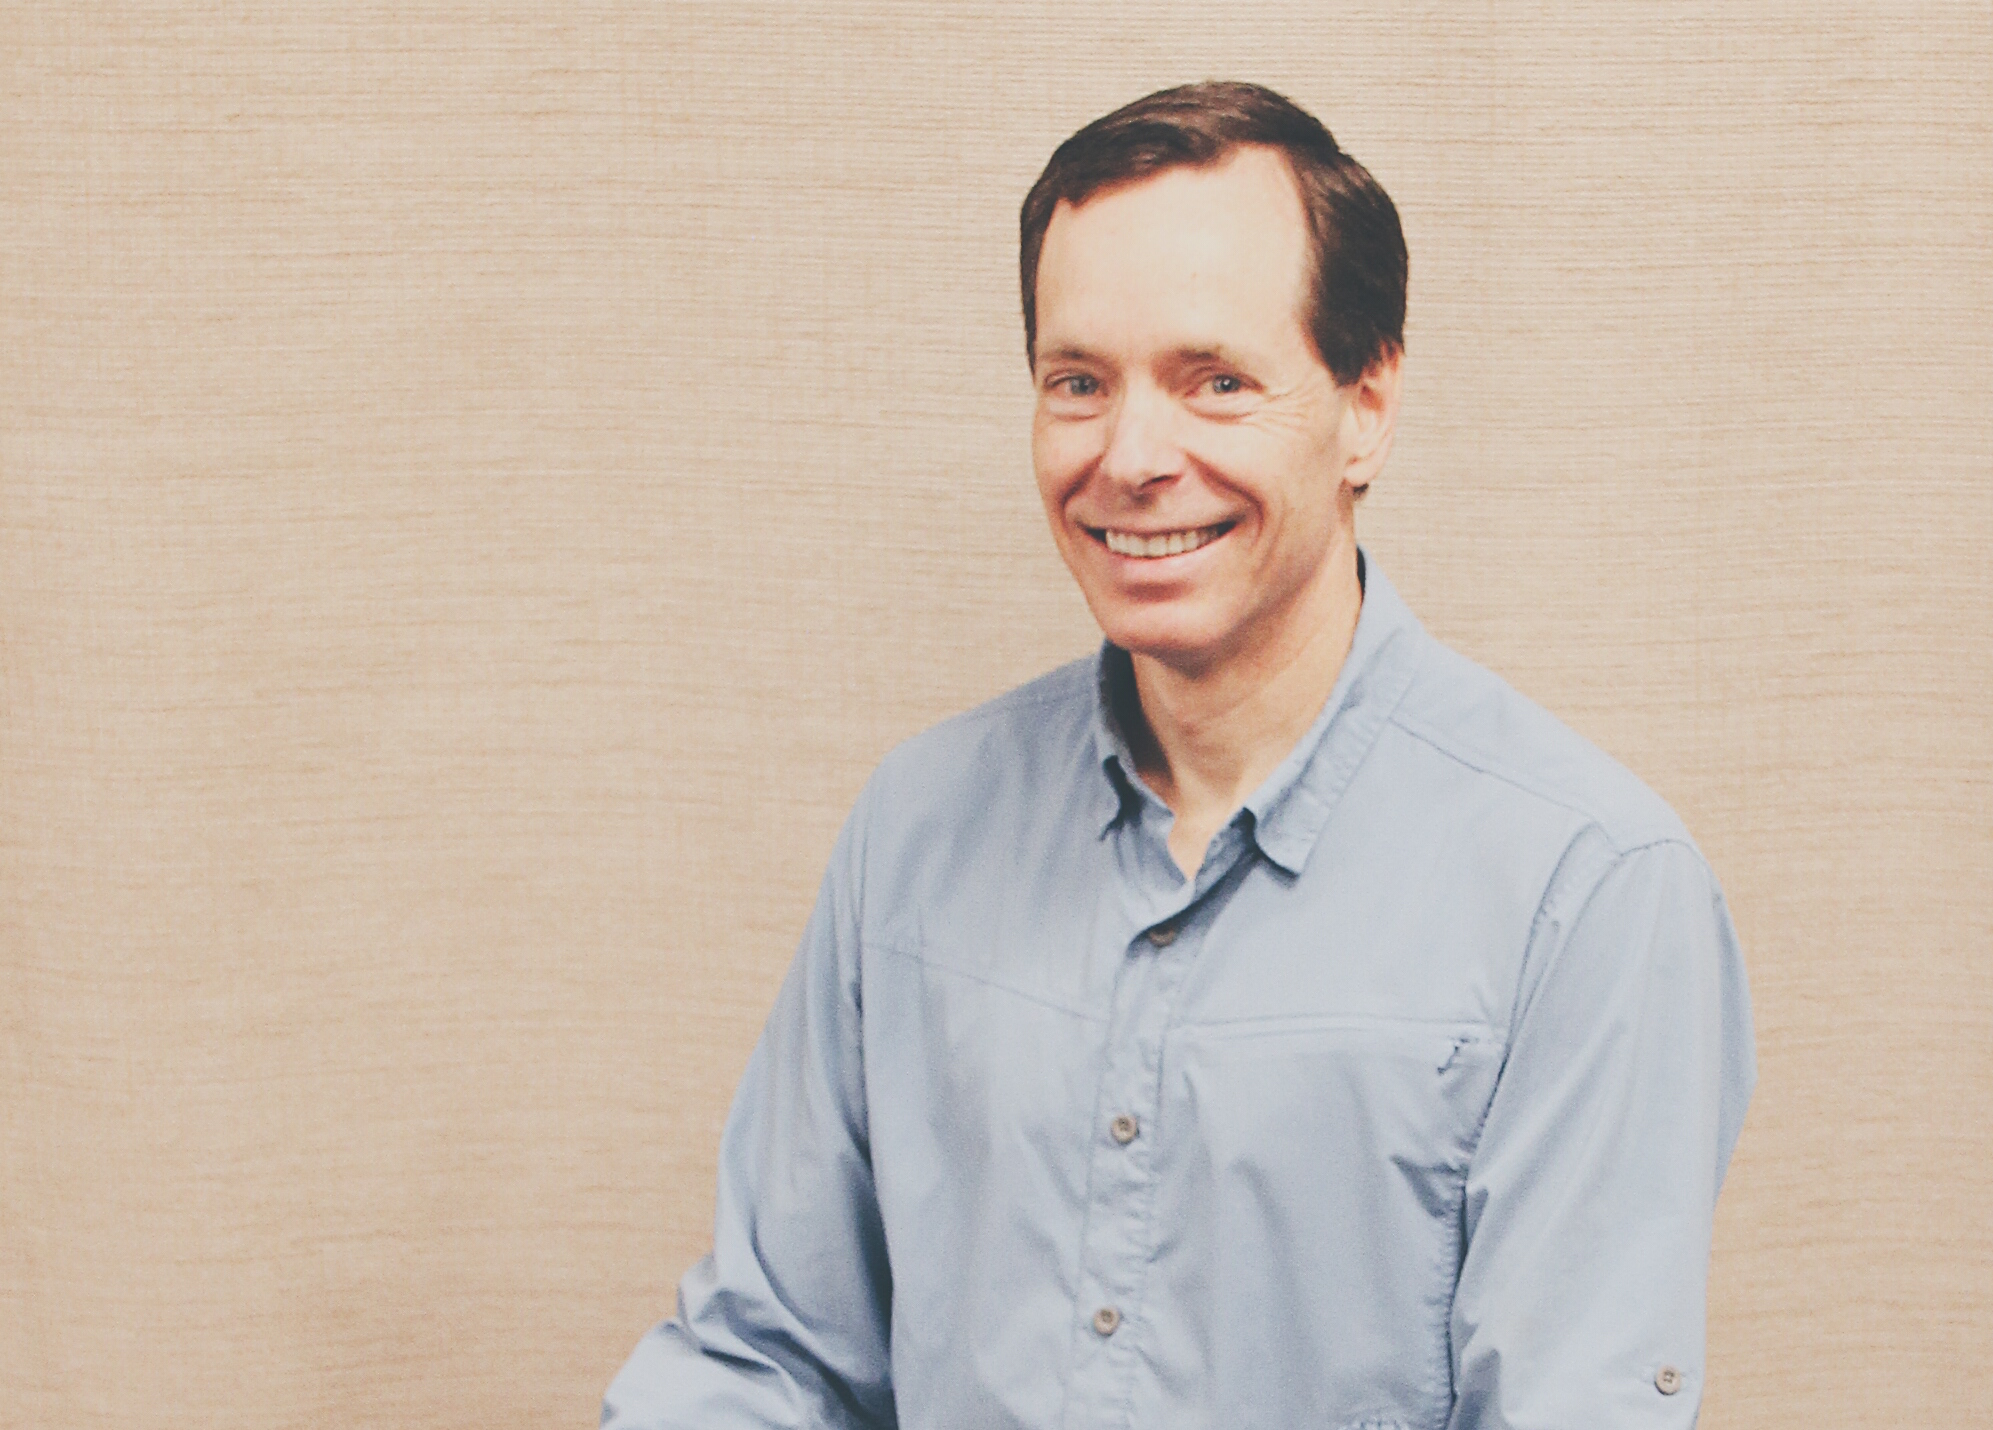 Cliff Richards, PT and Owner of Maple Valley Physical Therapy